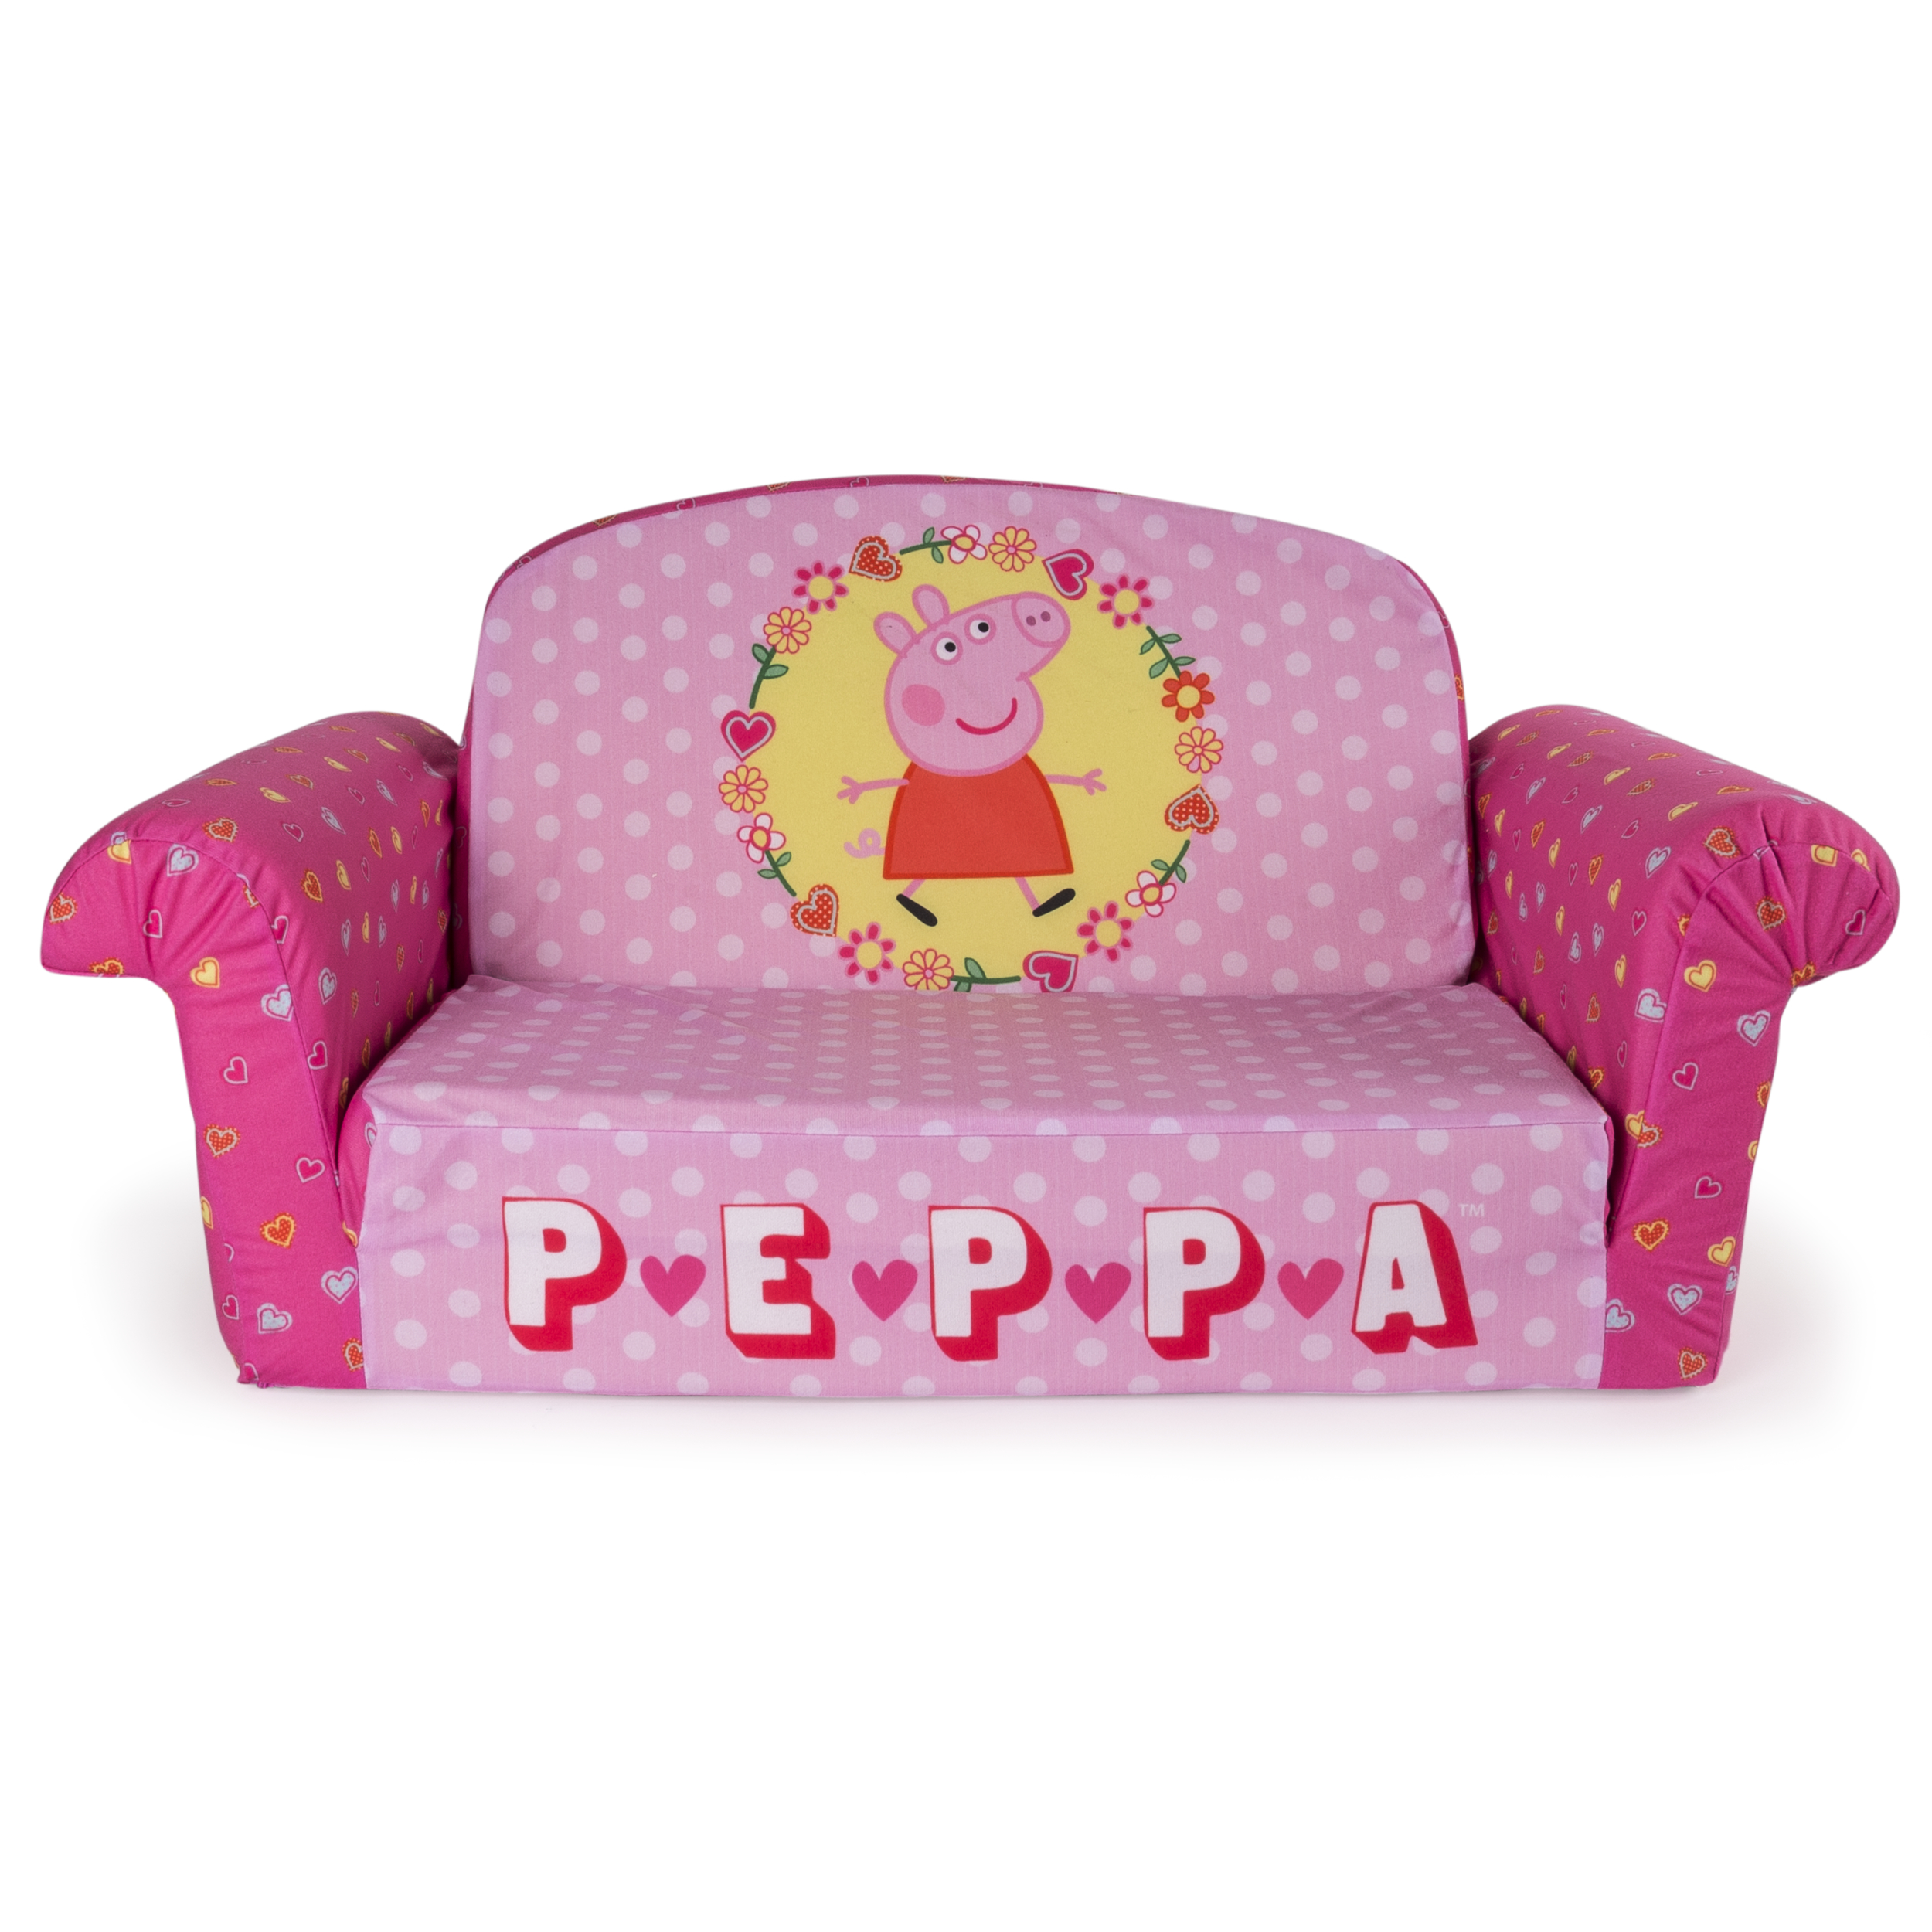 Peppa Pig 2 in 1 Flip Open Foam Toddler Sofa